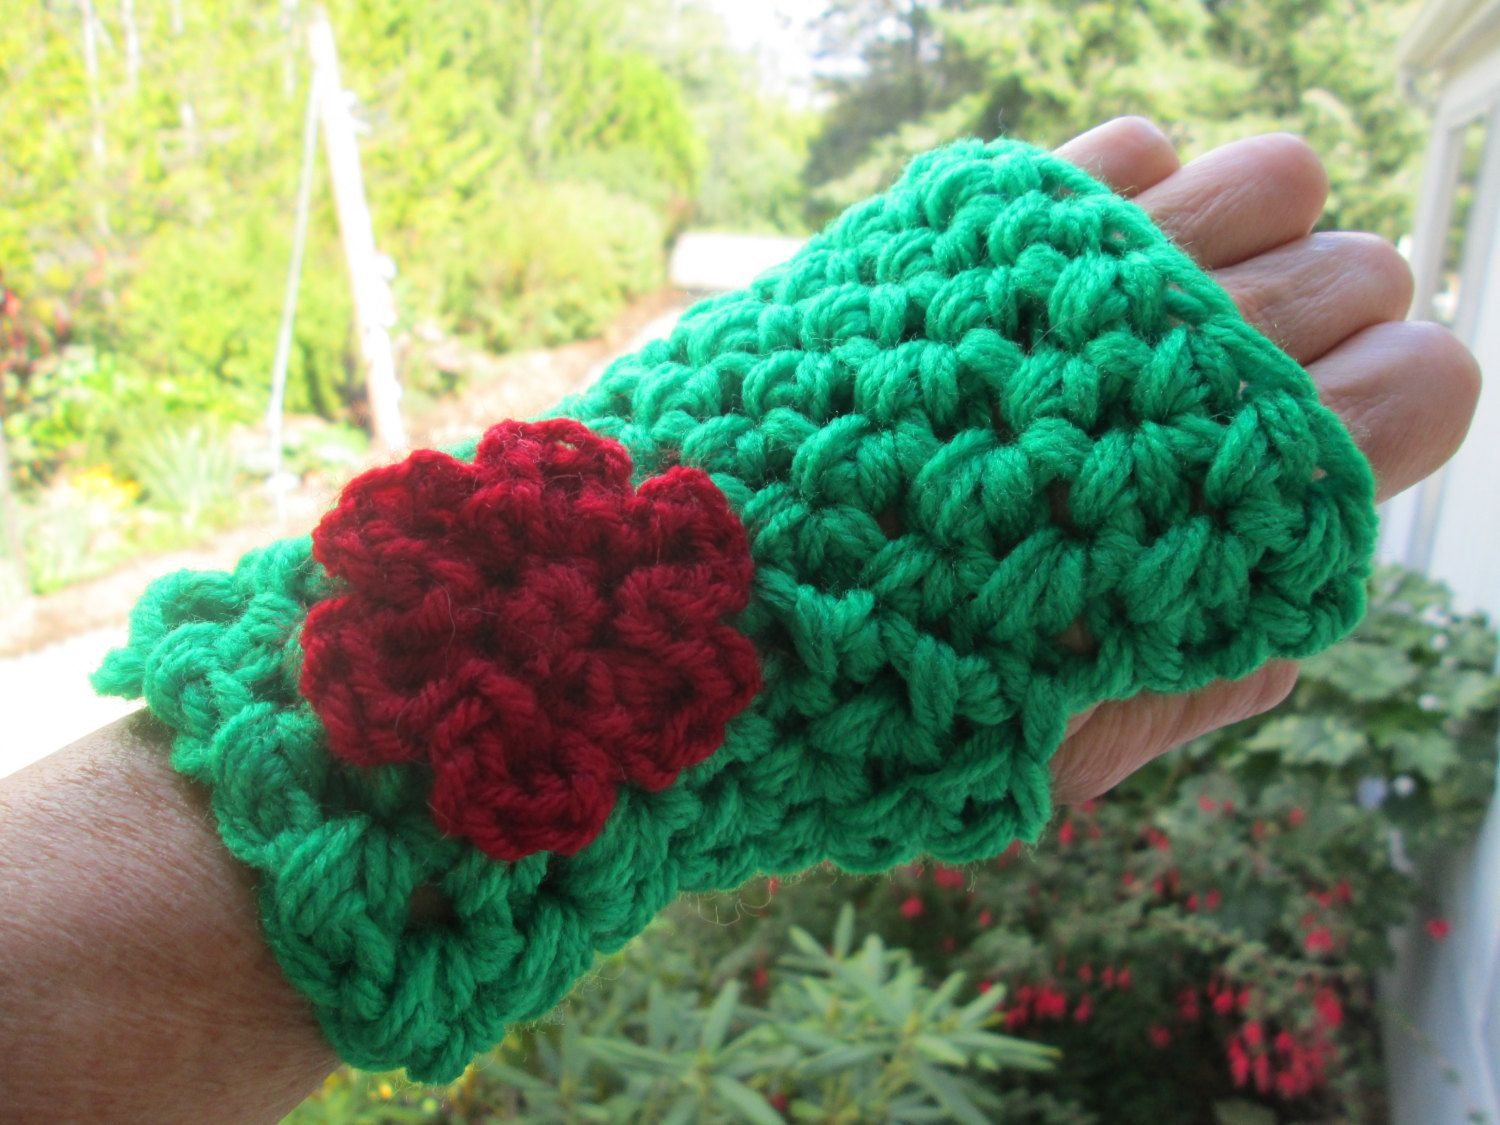 Driving texting gloves - Green Fingerless Gloves With Burgundy Flower By Suzannesstitches Wrist Warmer Driving Gloves Texting Gloves Green Fingerless Gloves